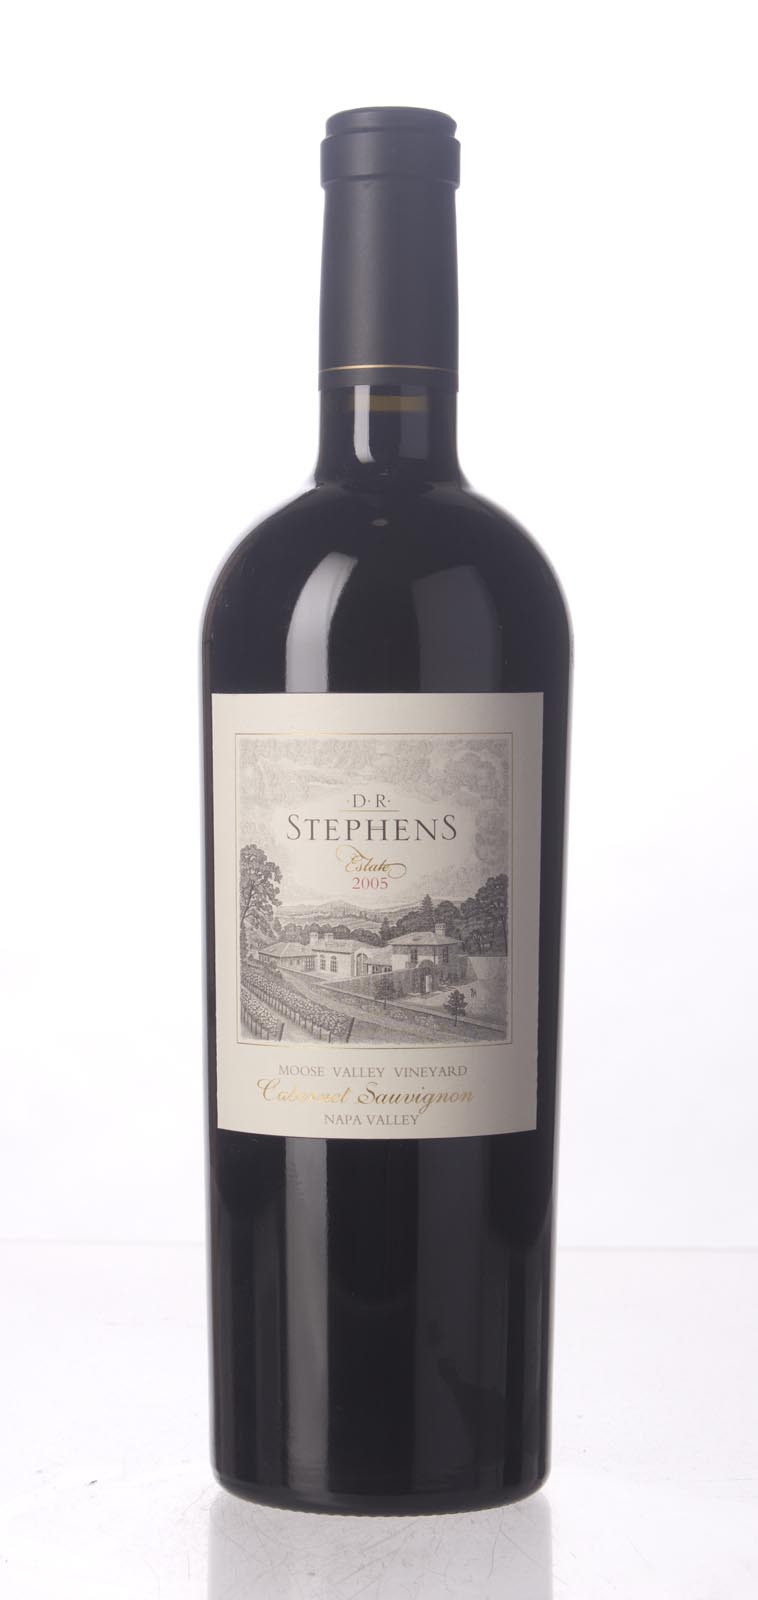 D.R. Stephens Cabernet Sauvignon Moose Valley Vineyard 2005, 750mL (WA91) from The BPW - Merchants of rare and fine wines.